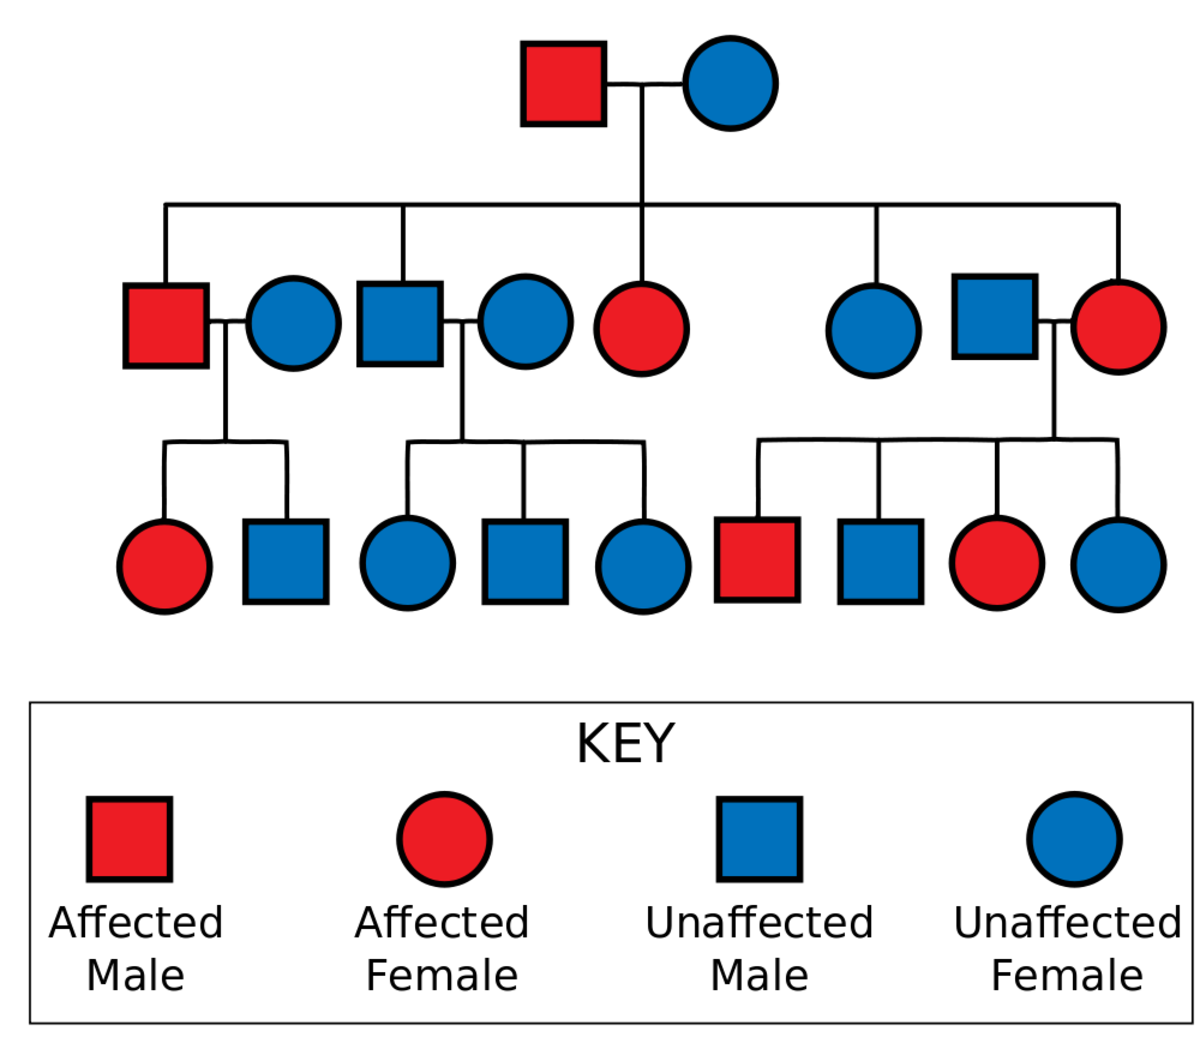 Autosomal Dominant Pedigree Chart. In Autosomal Dominance the chance of receiving and expressing a particular gene is 50% regardless of the sex of parent or child.